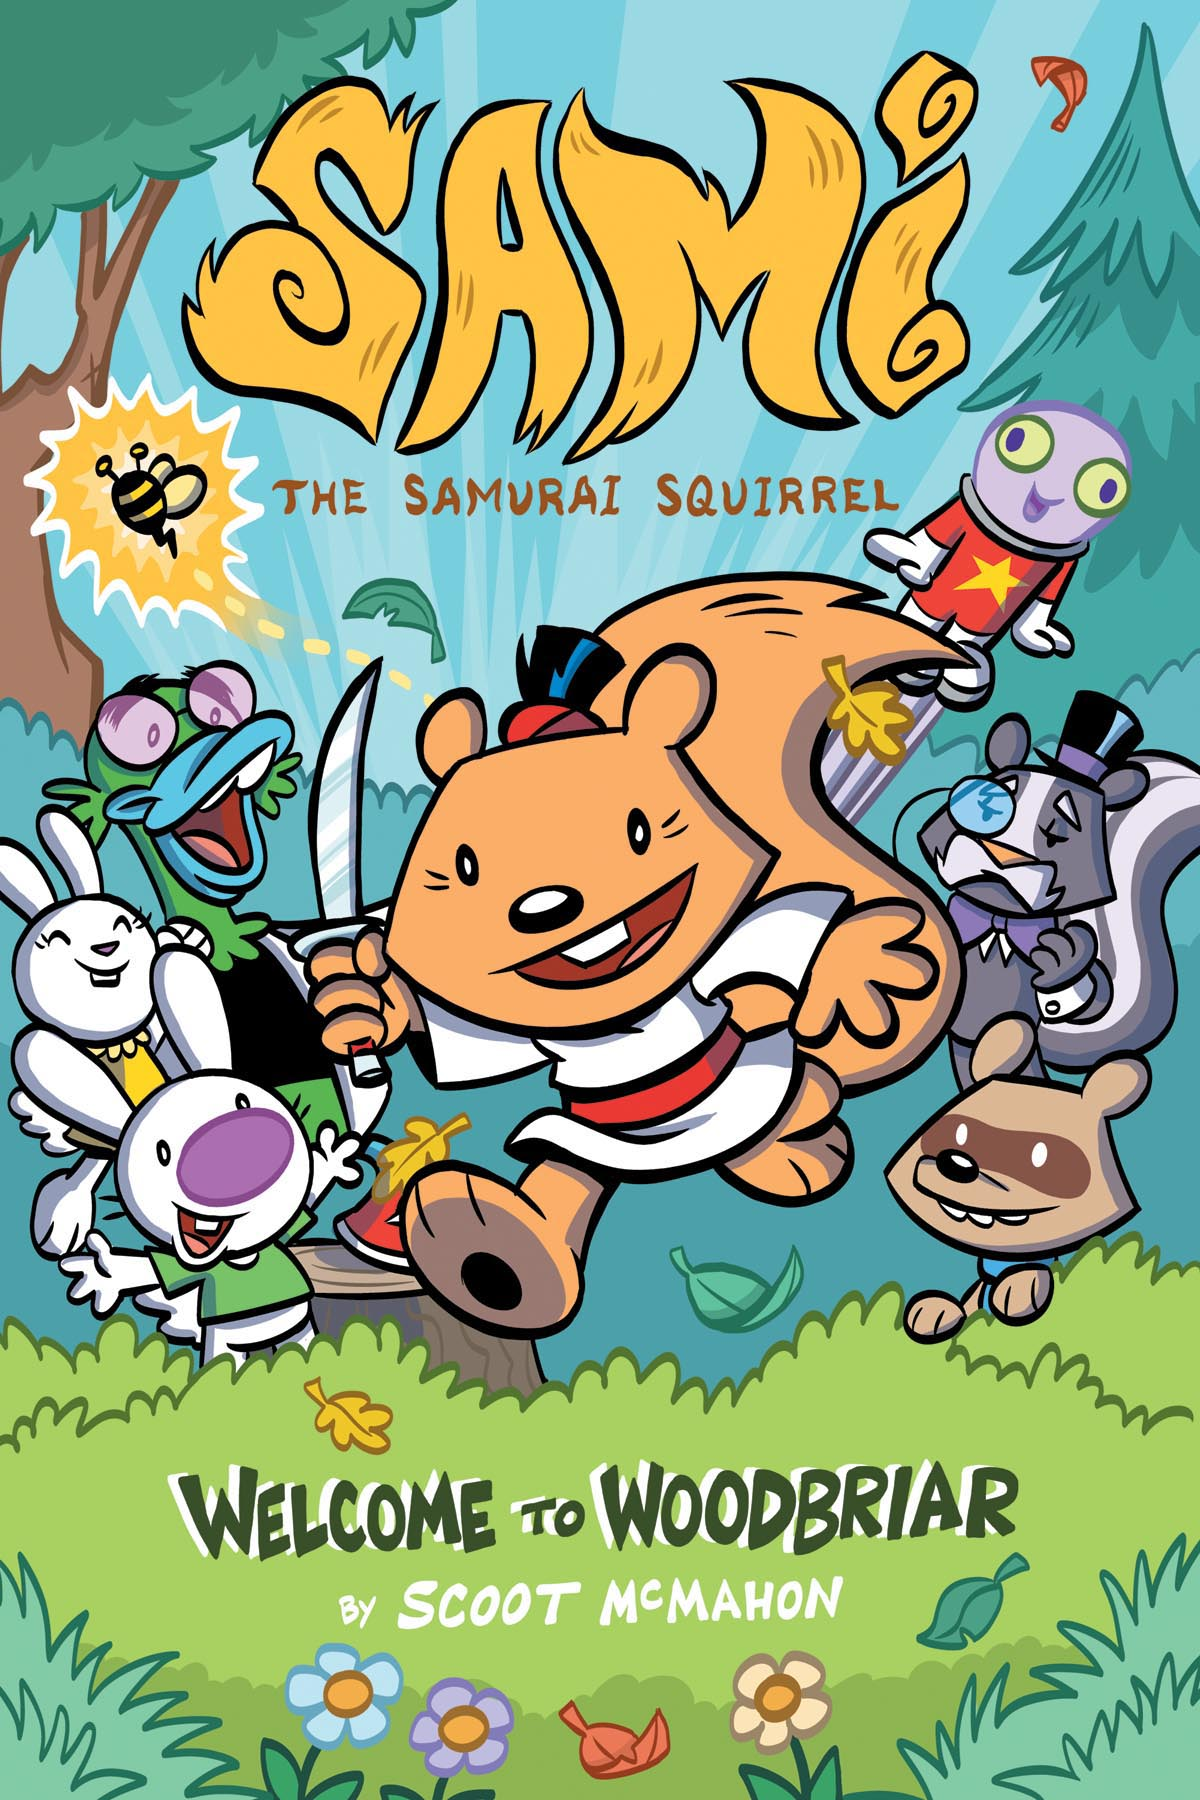 Sami the Samurai Squirrel Welcome to Woodbriar Cover.jpg